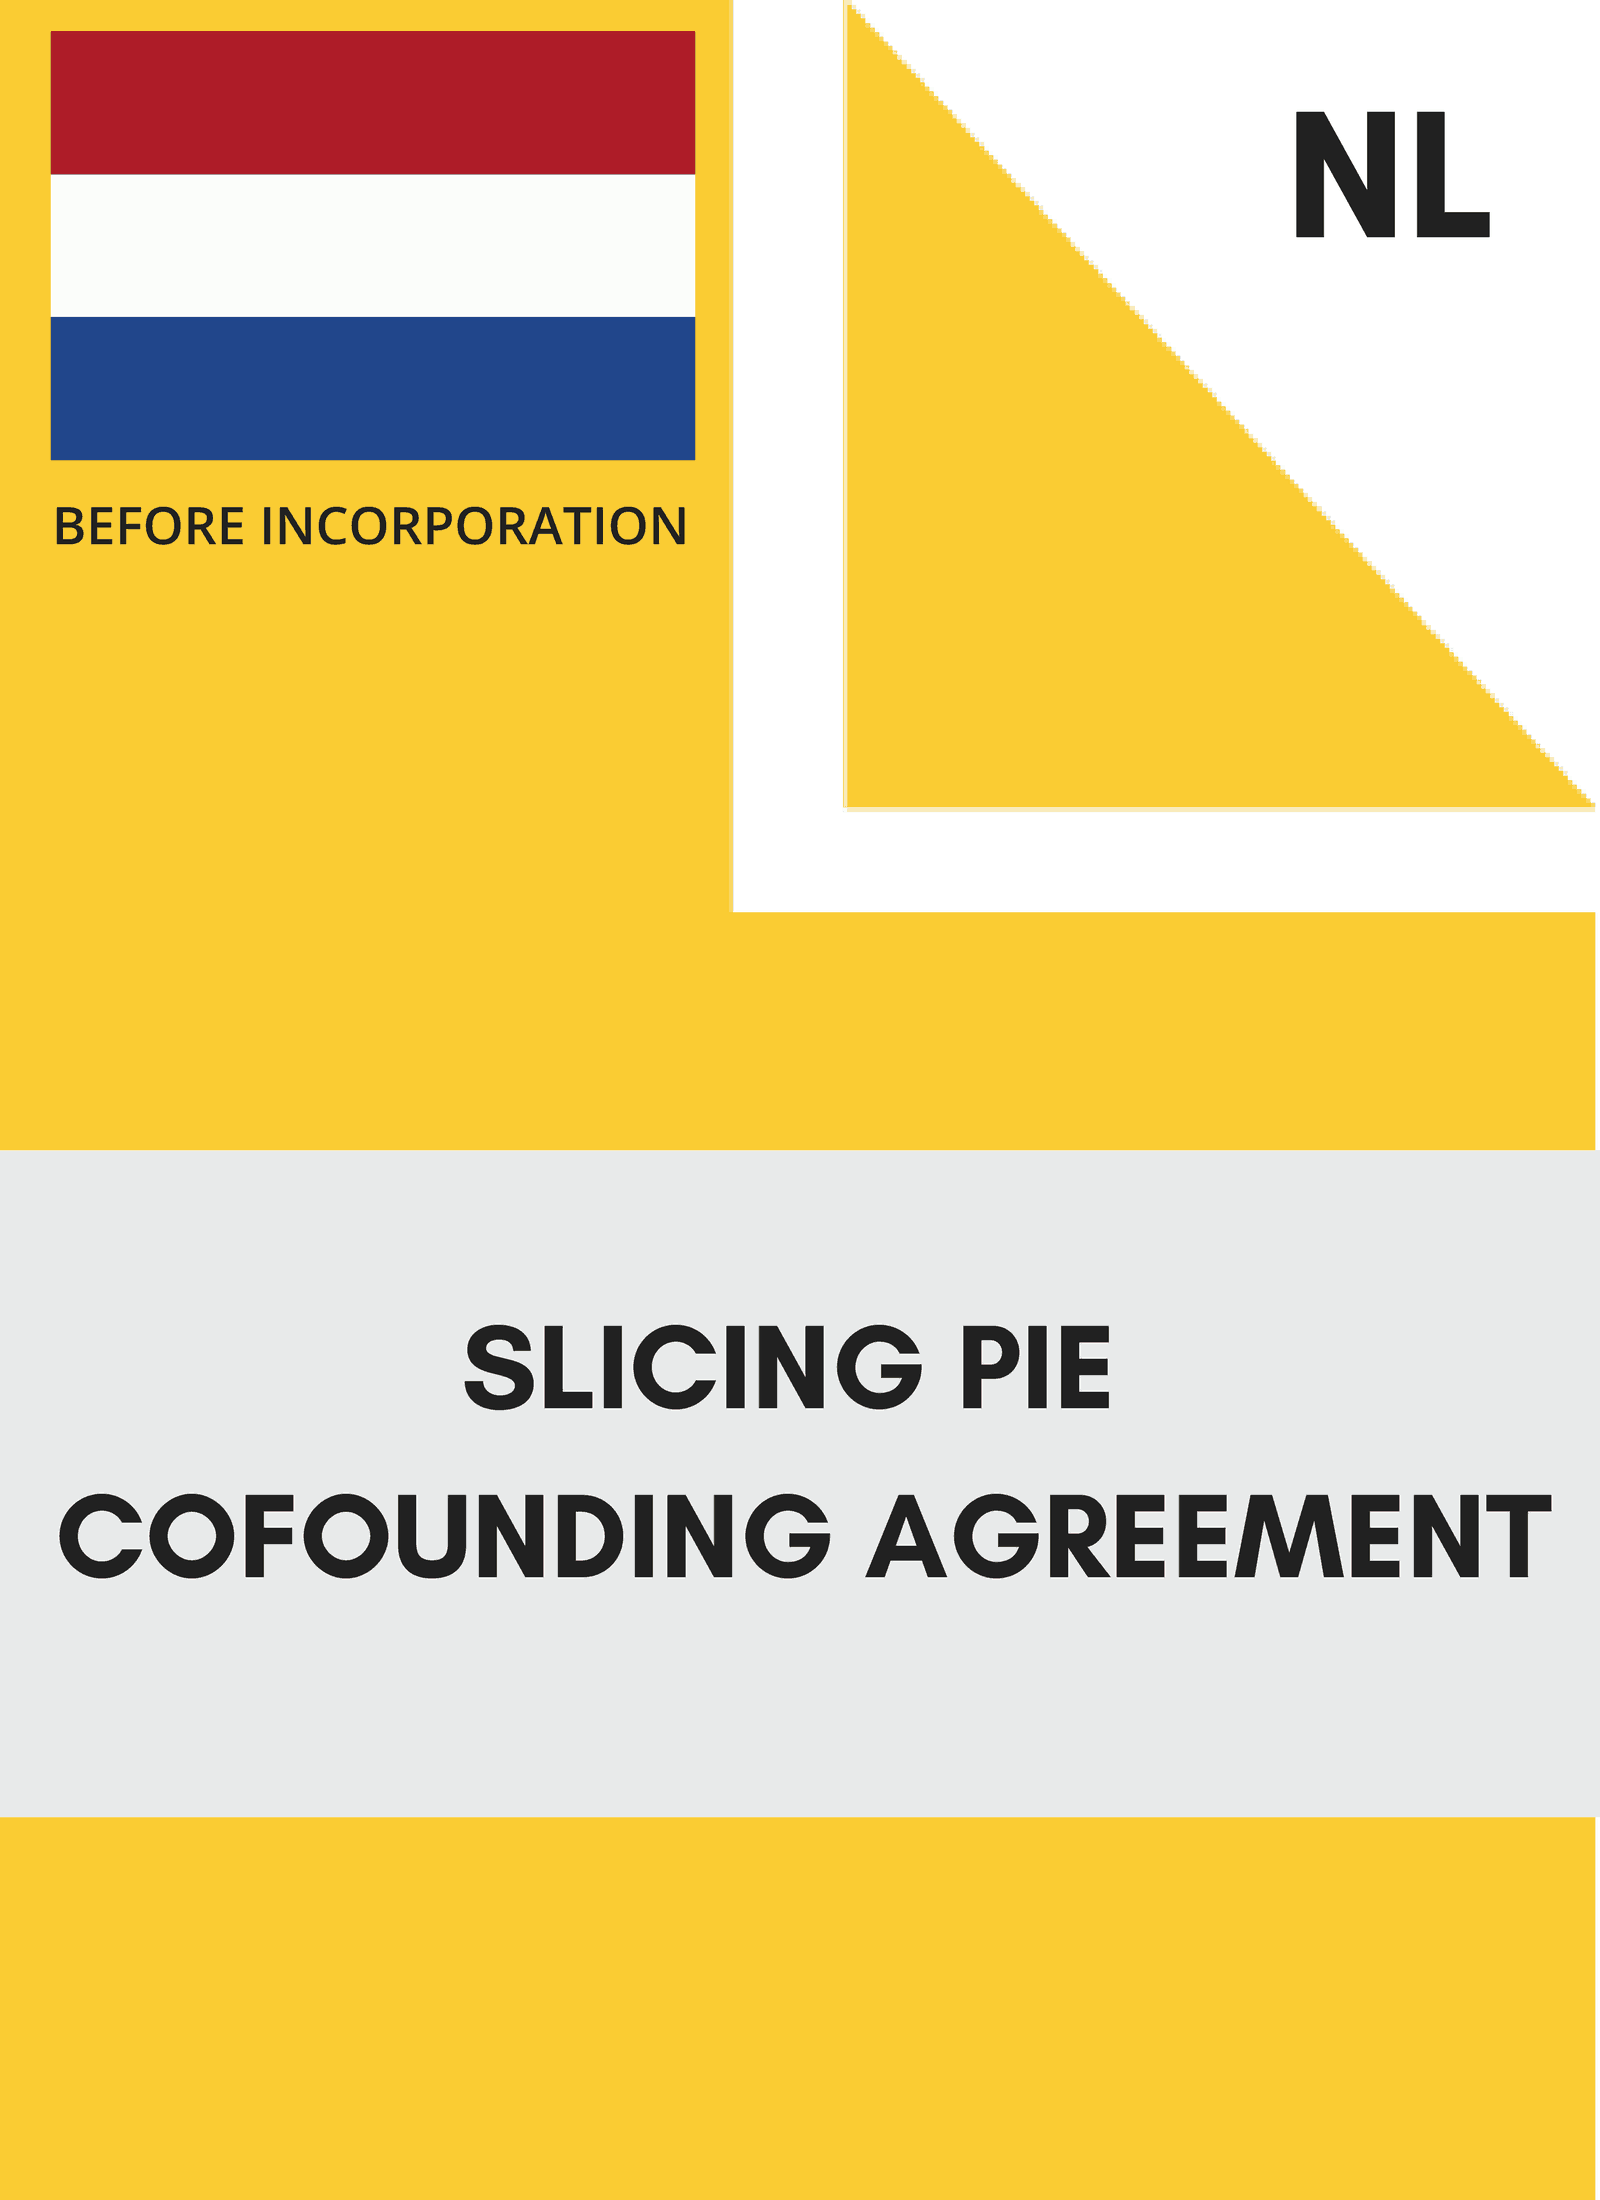 slicing-pie-llc